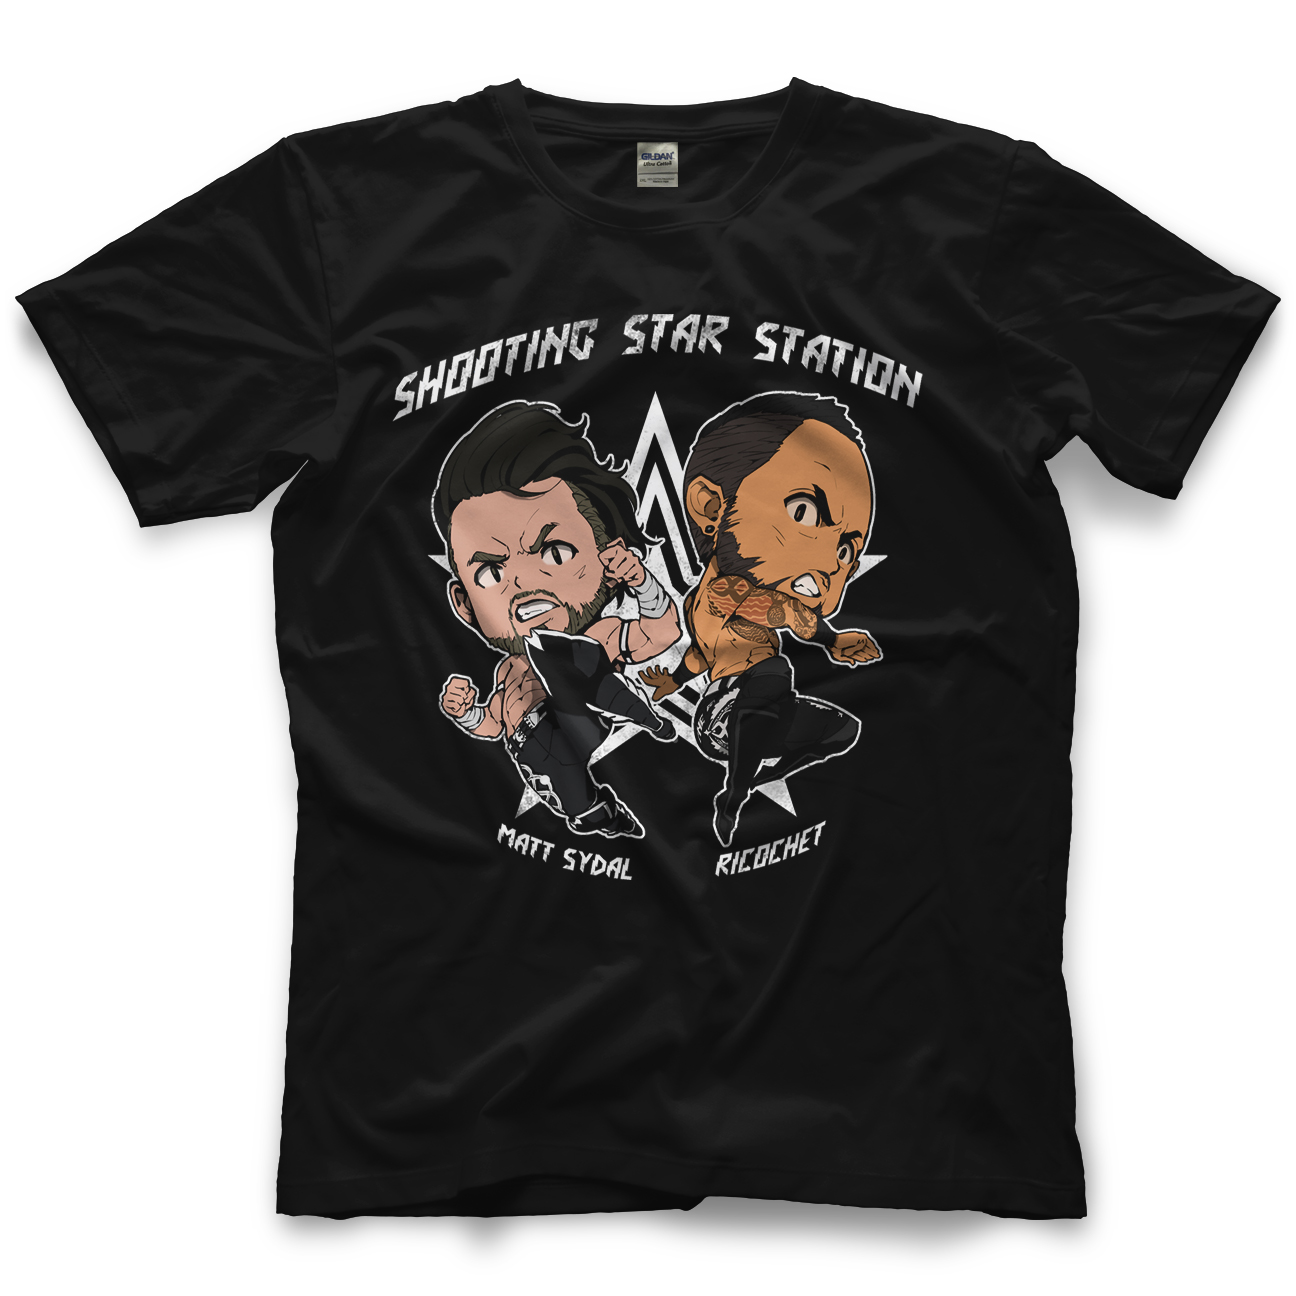 Matt Sydal and Ricochet Shooting Star Station T-shirt